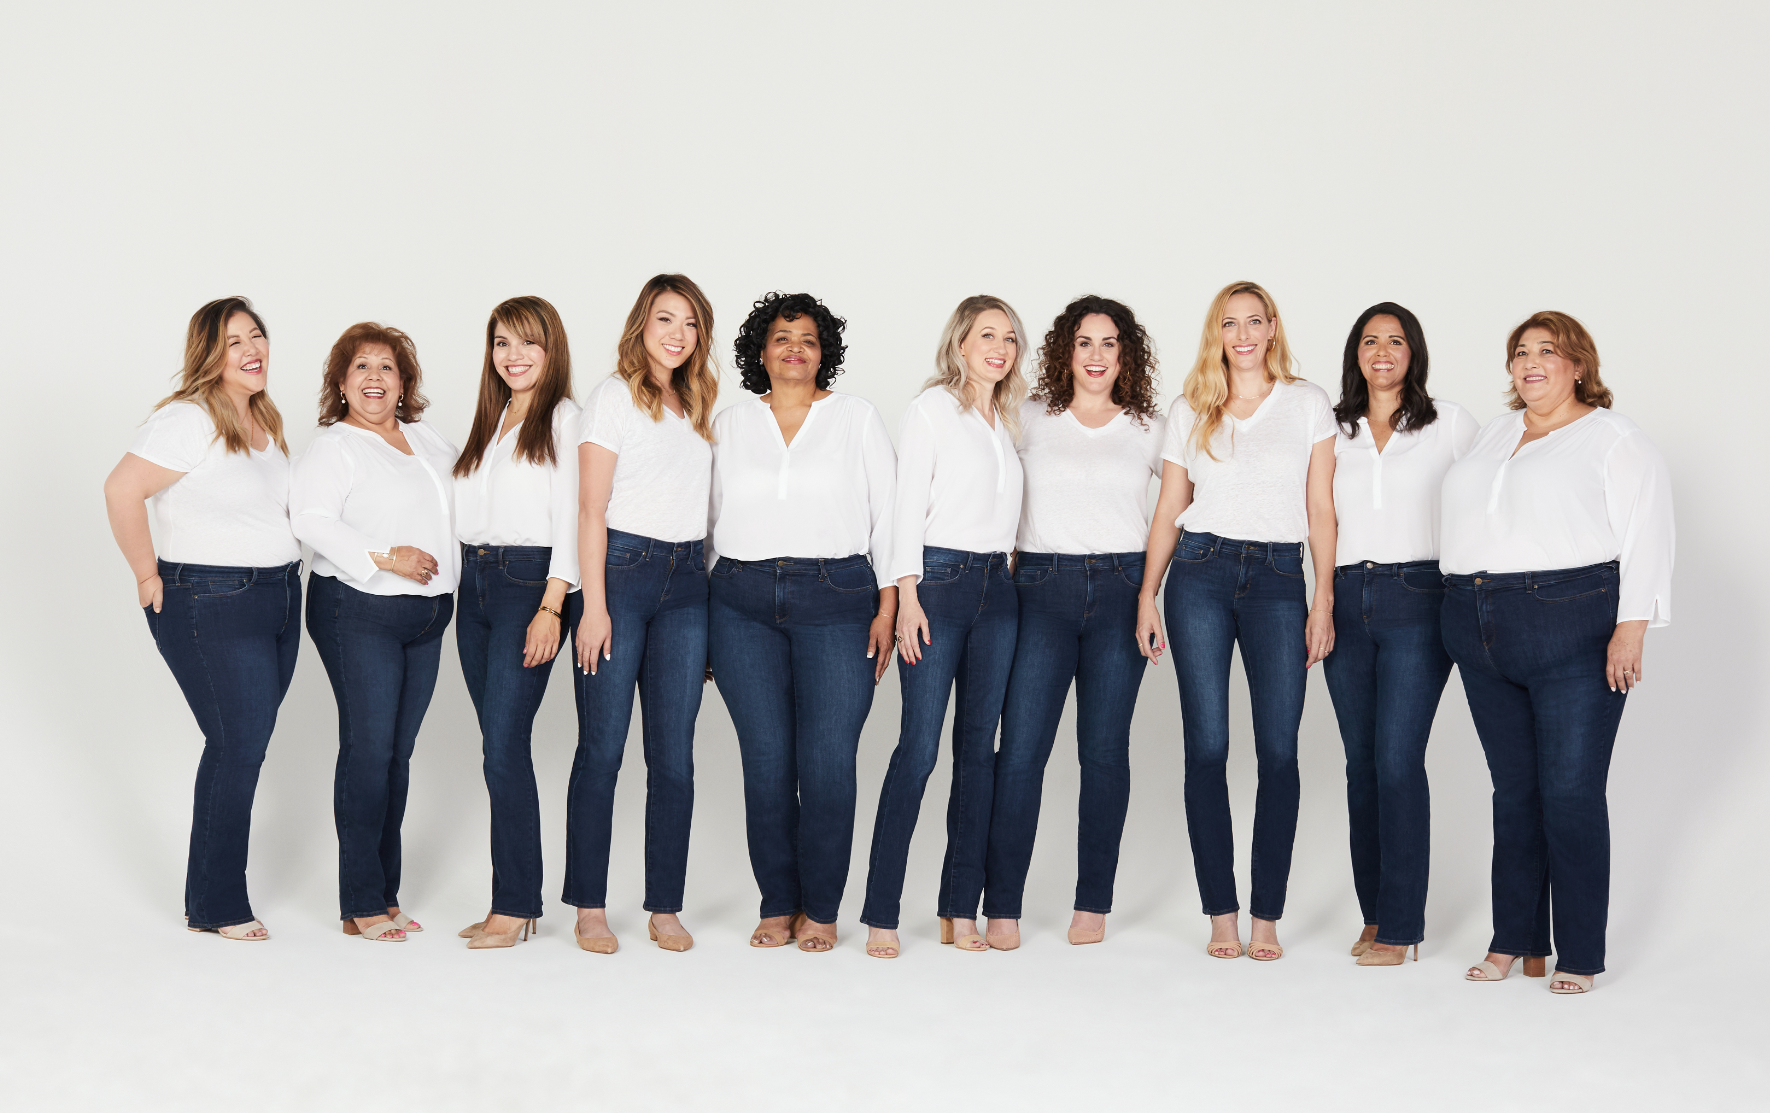 Reviewers Are Obsessing Over These Jeans That Come in 66(!) Sizes